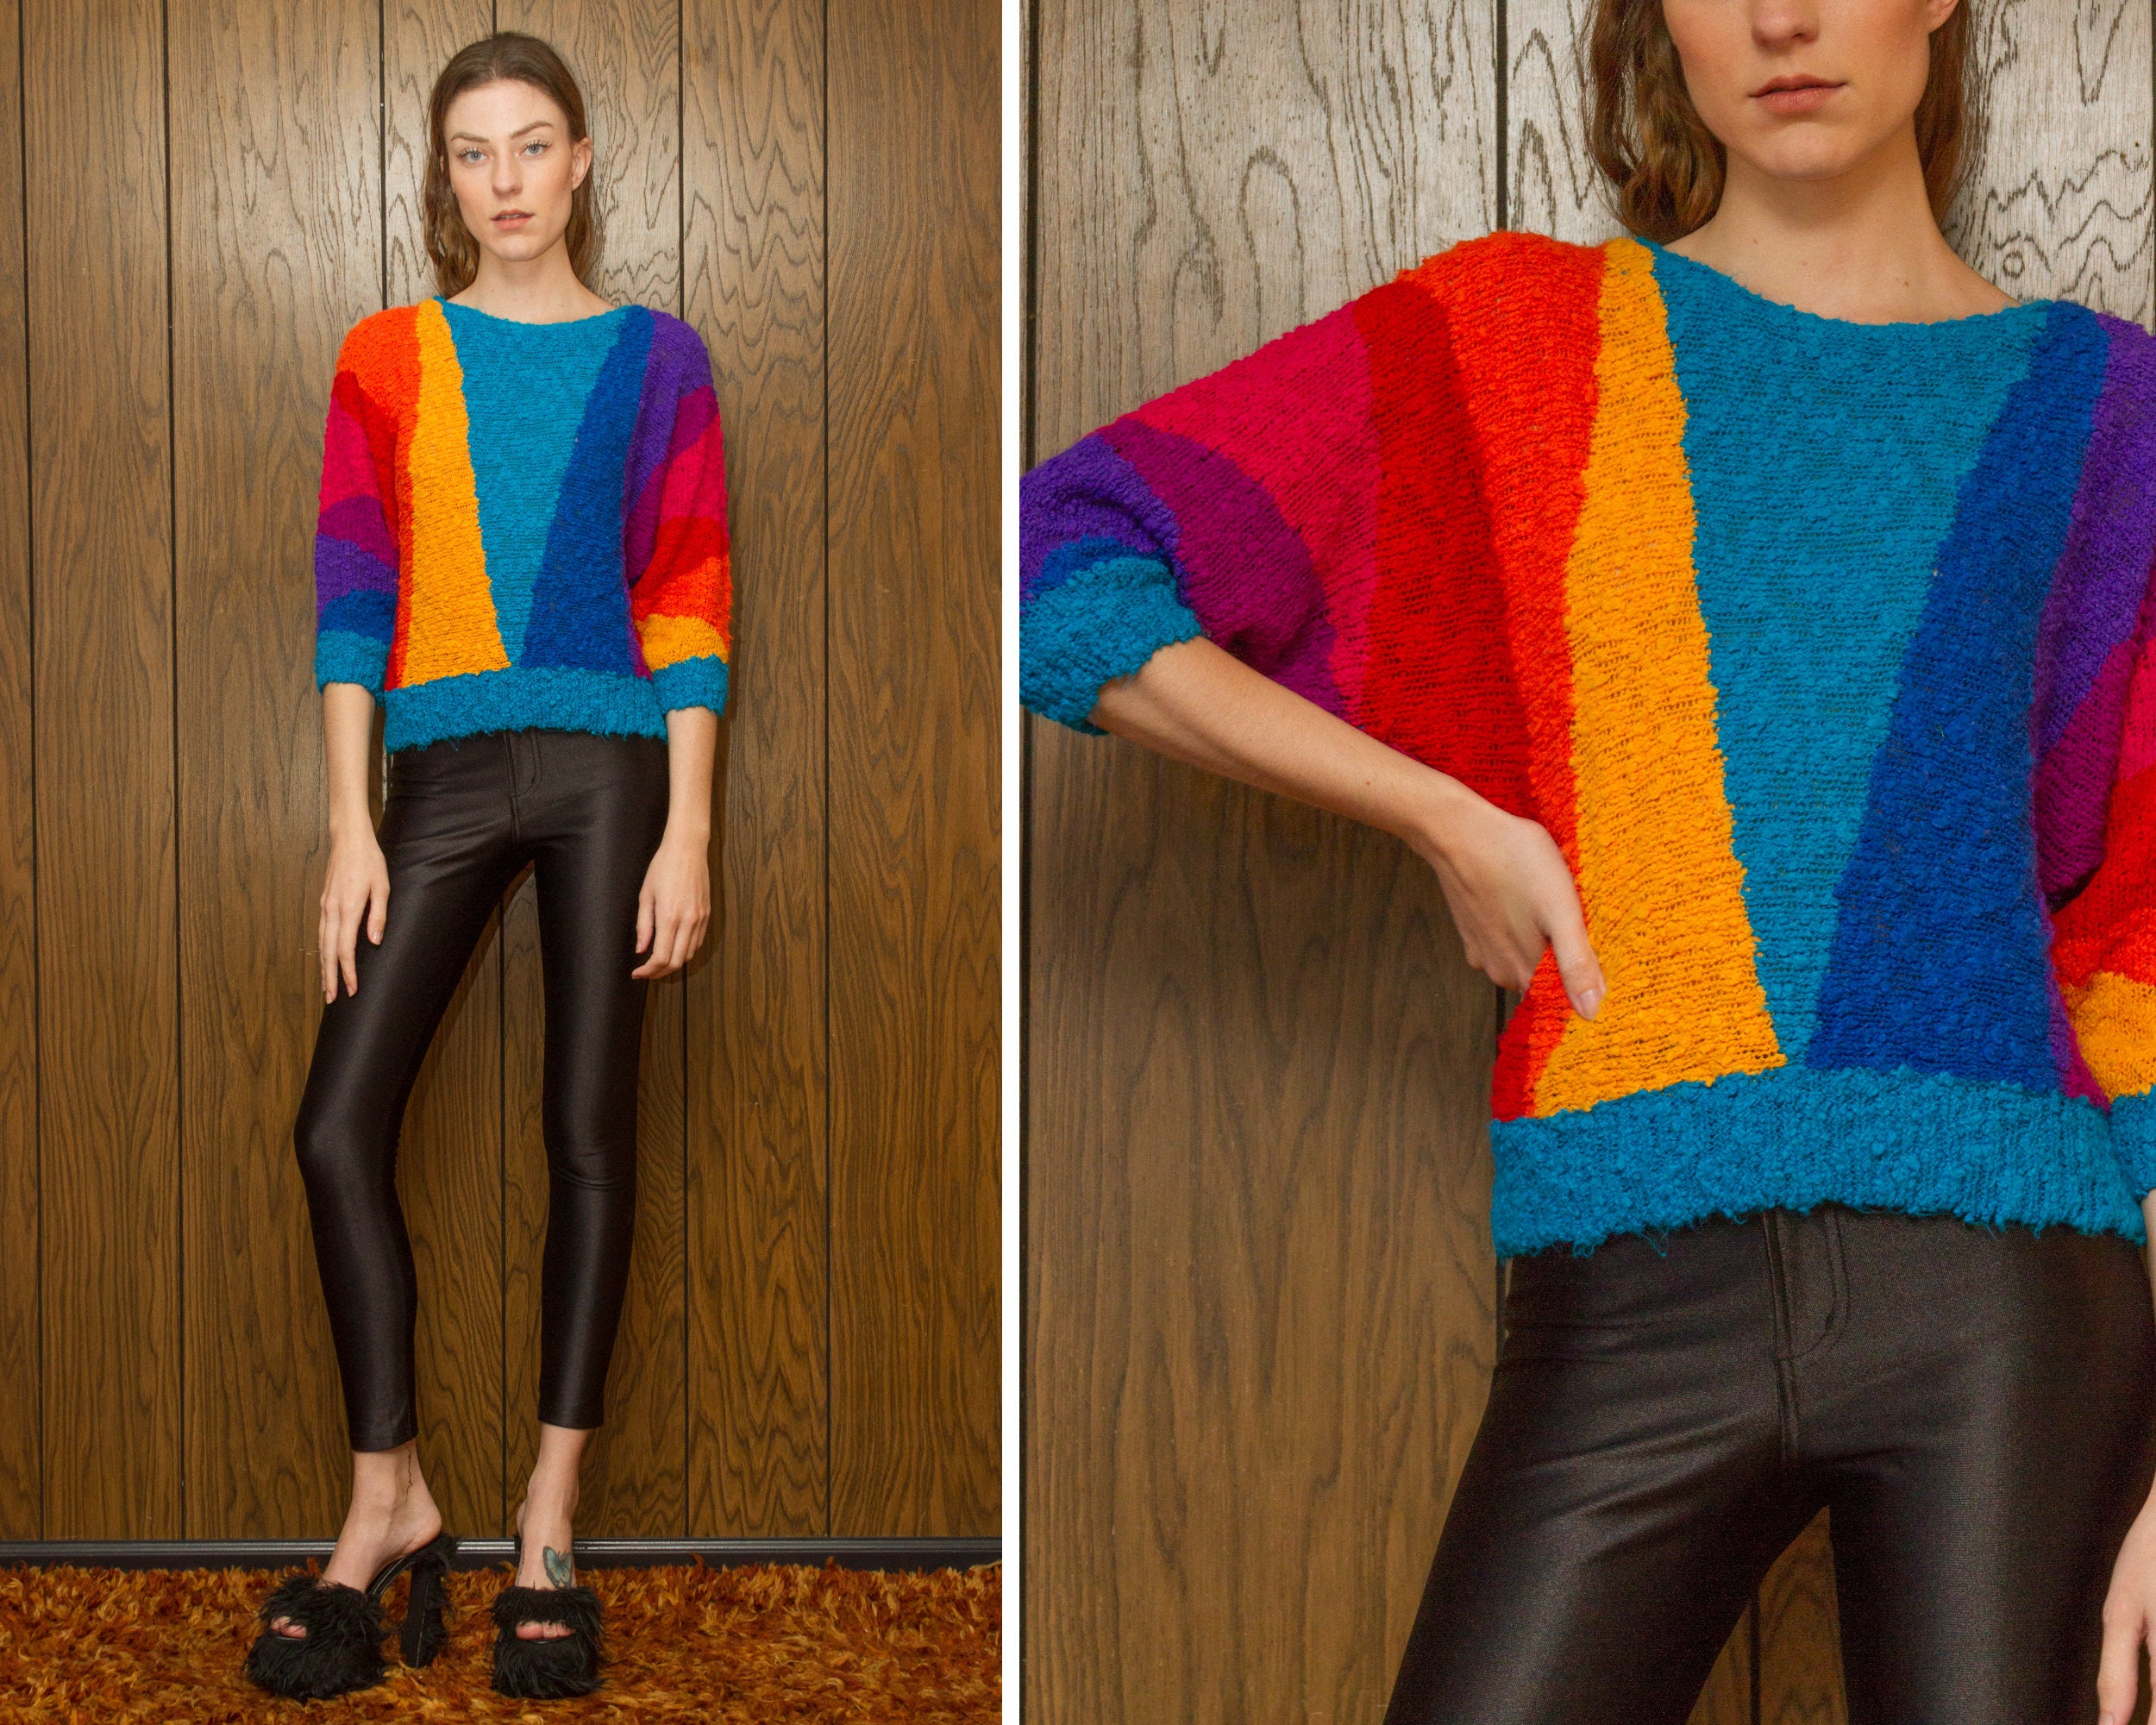 0bac4a30d Vintage 80s Gitano Knit Textured Graphic Triangle Rainbow Striped ...